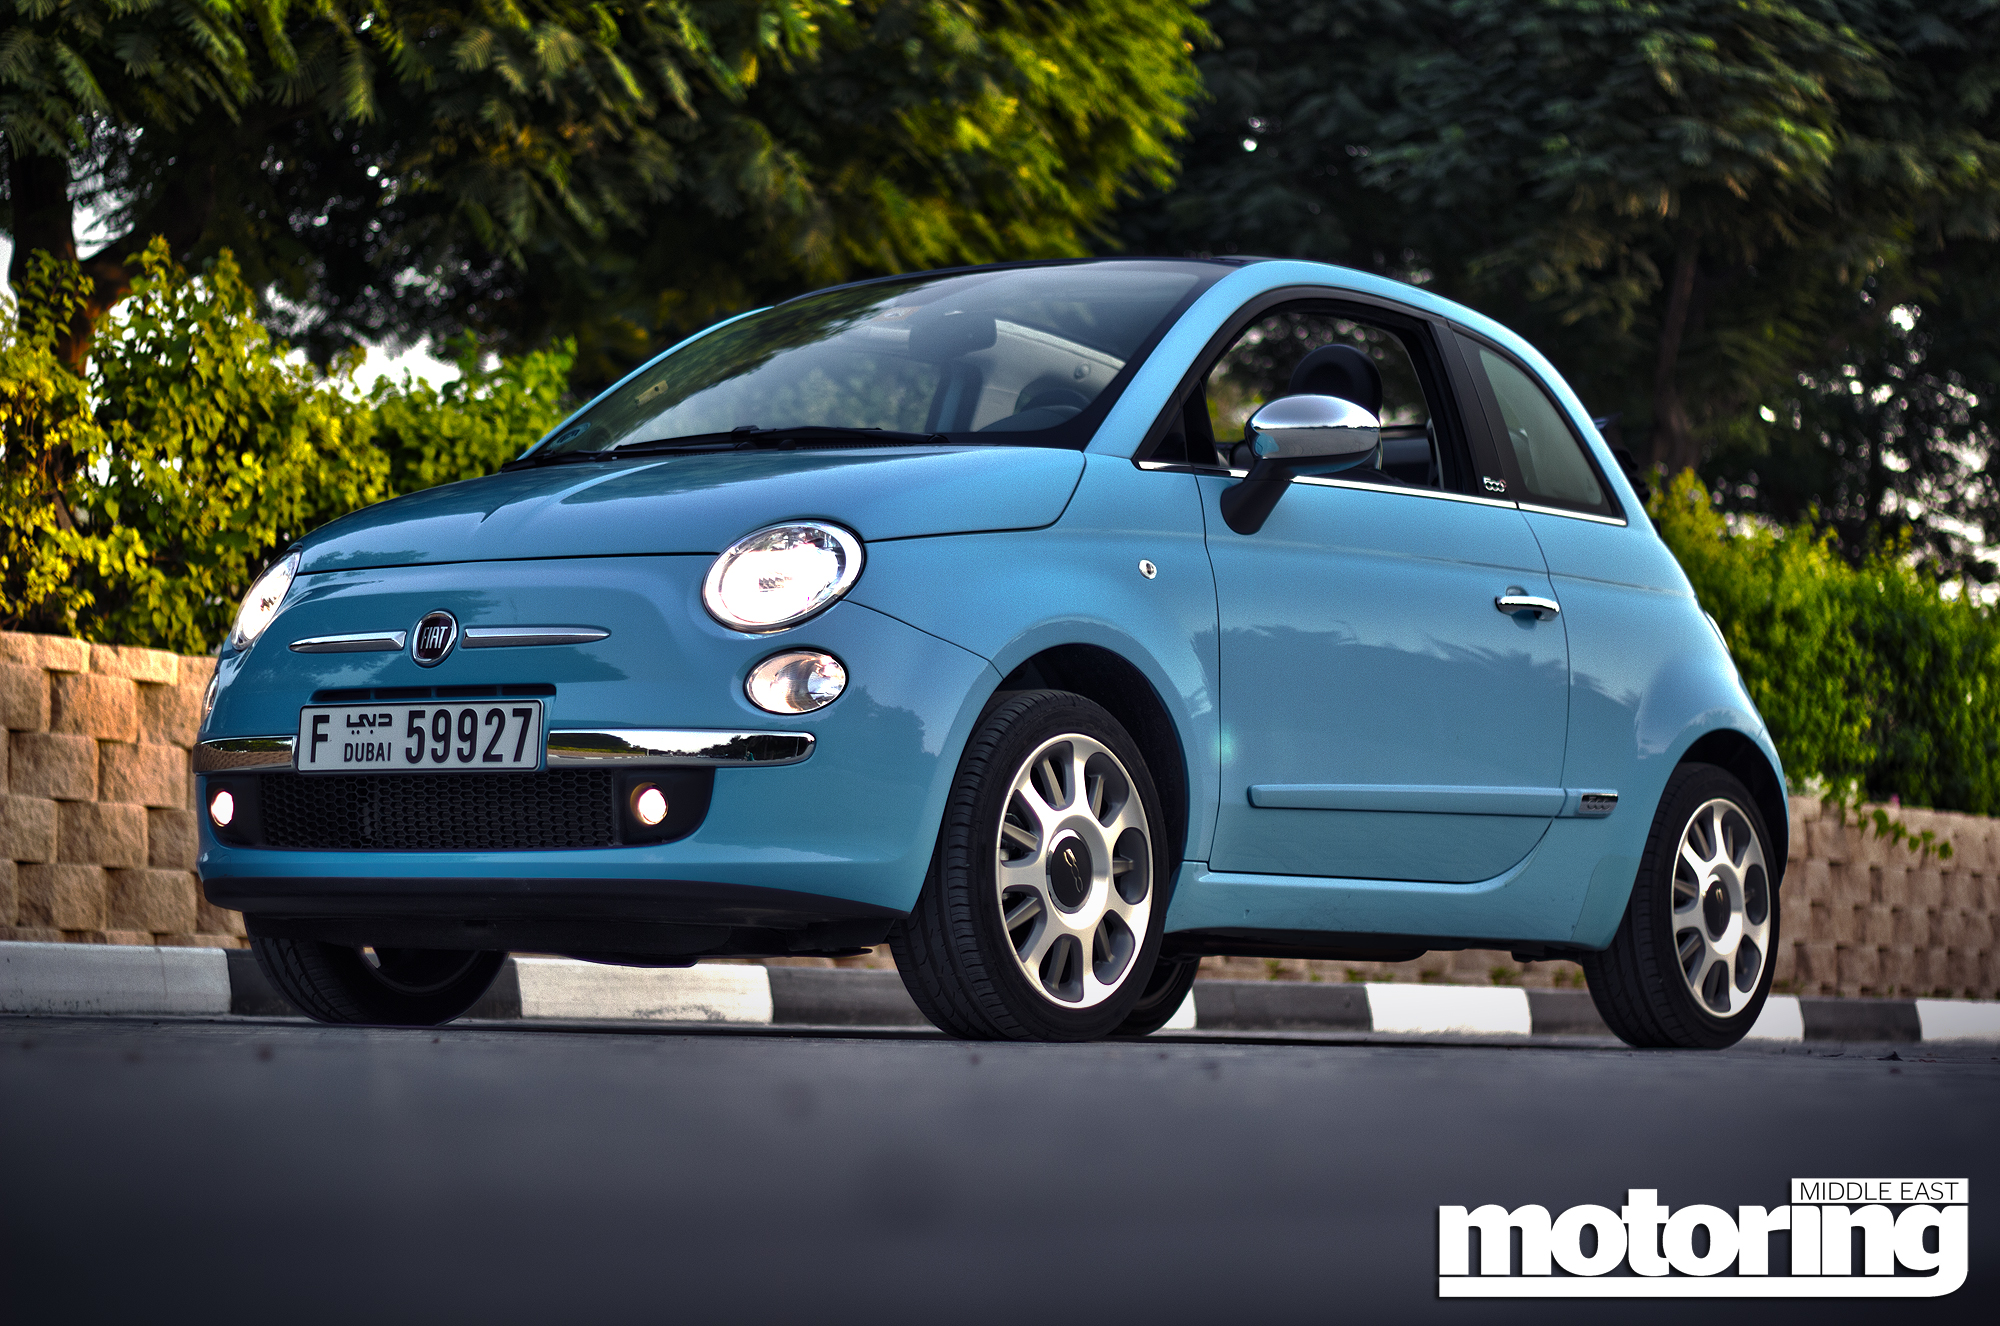 2012 fiat 500 convertible review motoring middle east car news reviews and buying. Black Bedroom Furniture Sets. Home Design Ideas